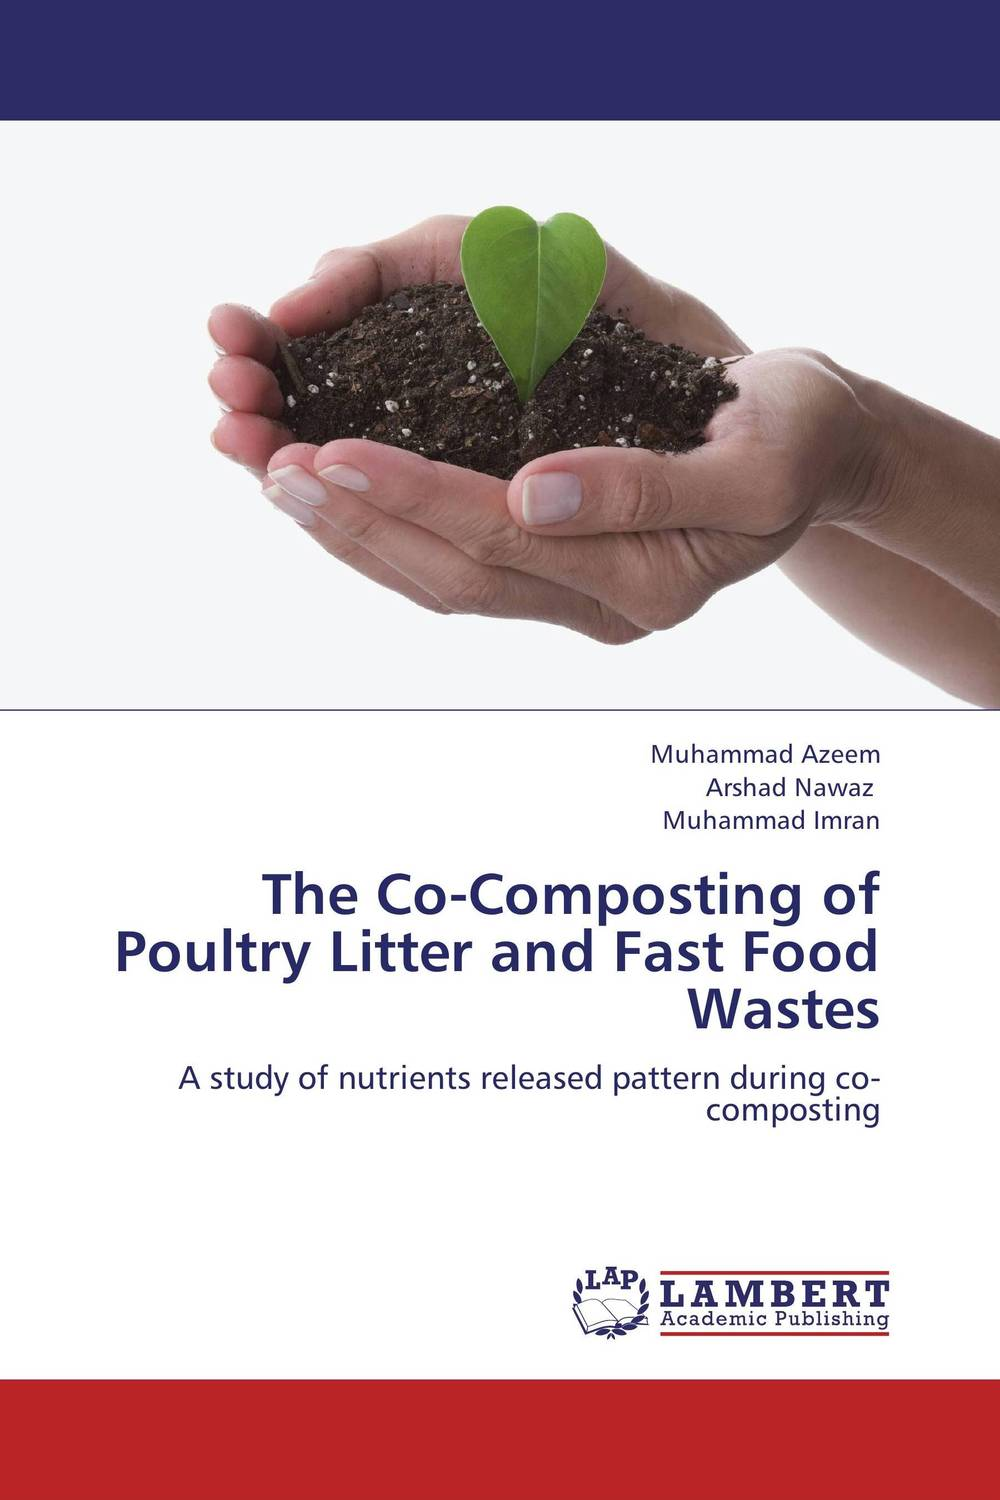 The Co-Composting of Poultry Litter and Fast Food Wastes estimating the quantity and quality of poultry litter in tamilnadu